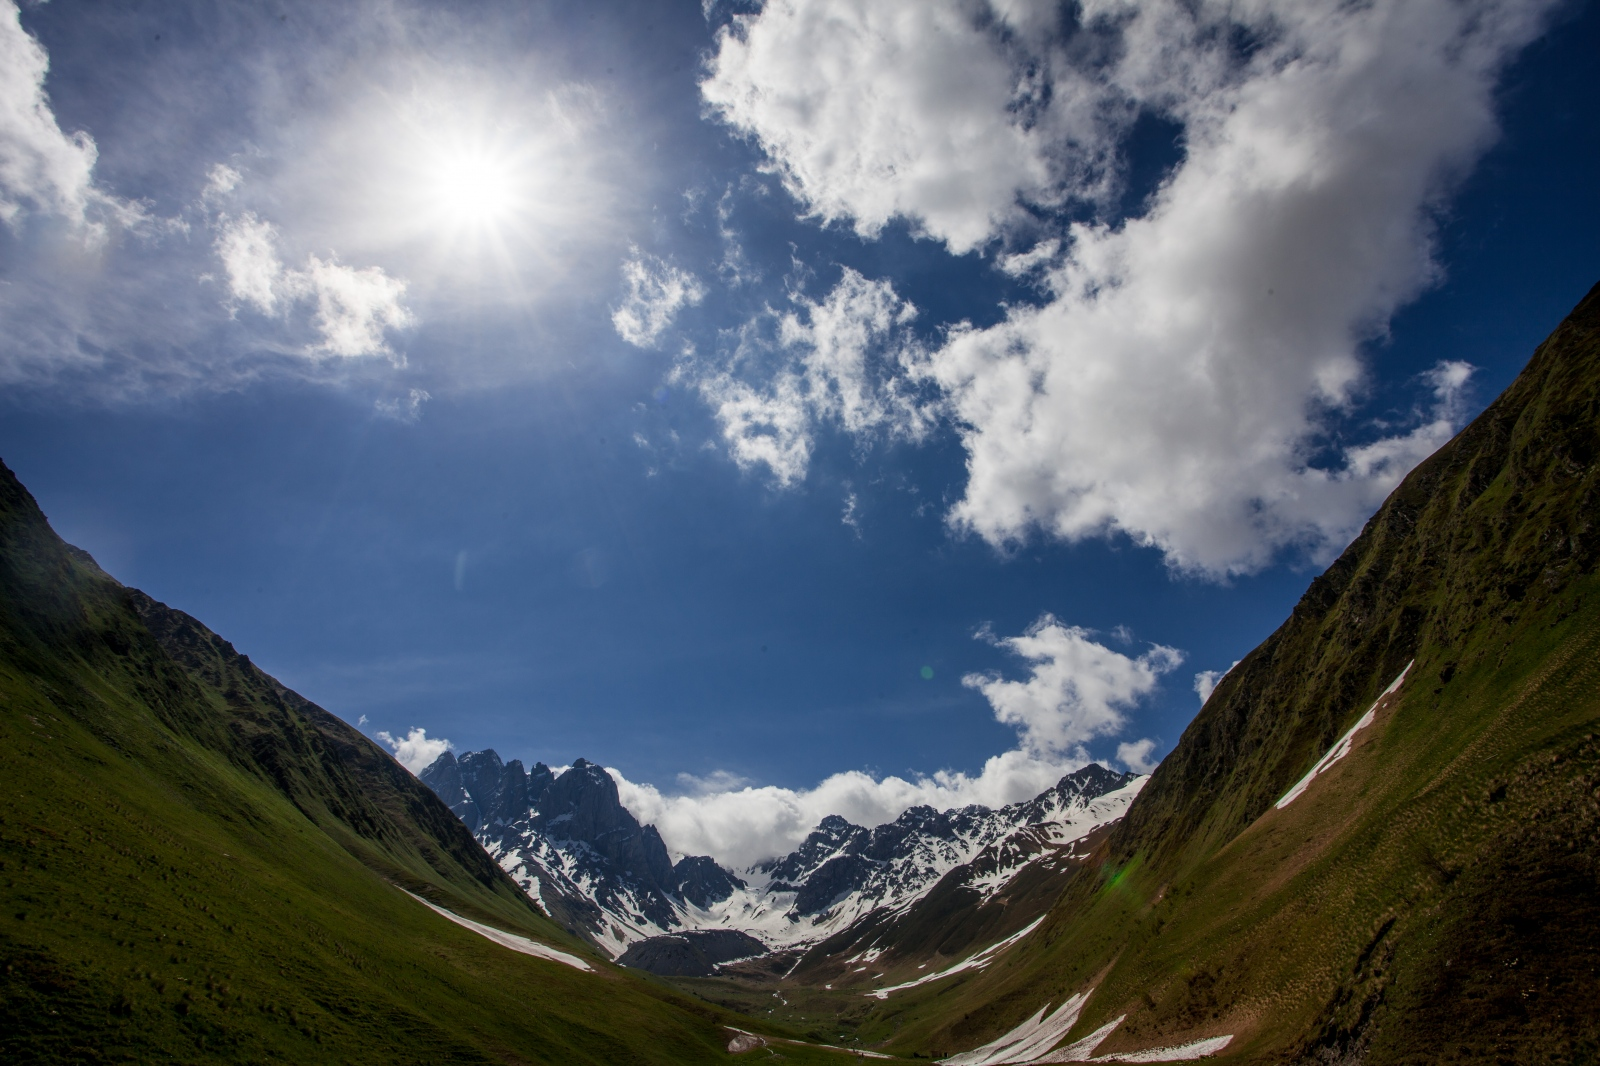 Photography image - Spending my summer outside photographing the natural beauty of the Republic of Georgia and the Caucasus Mountain Range.